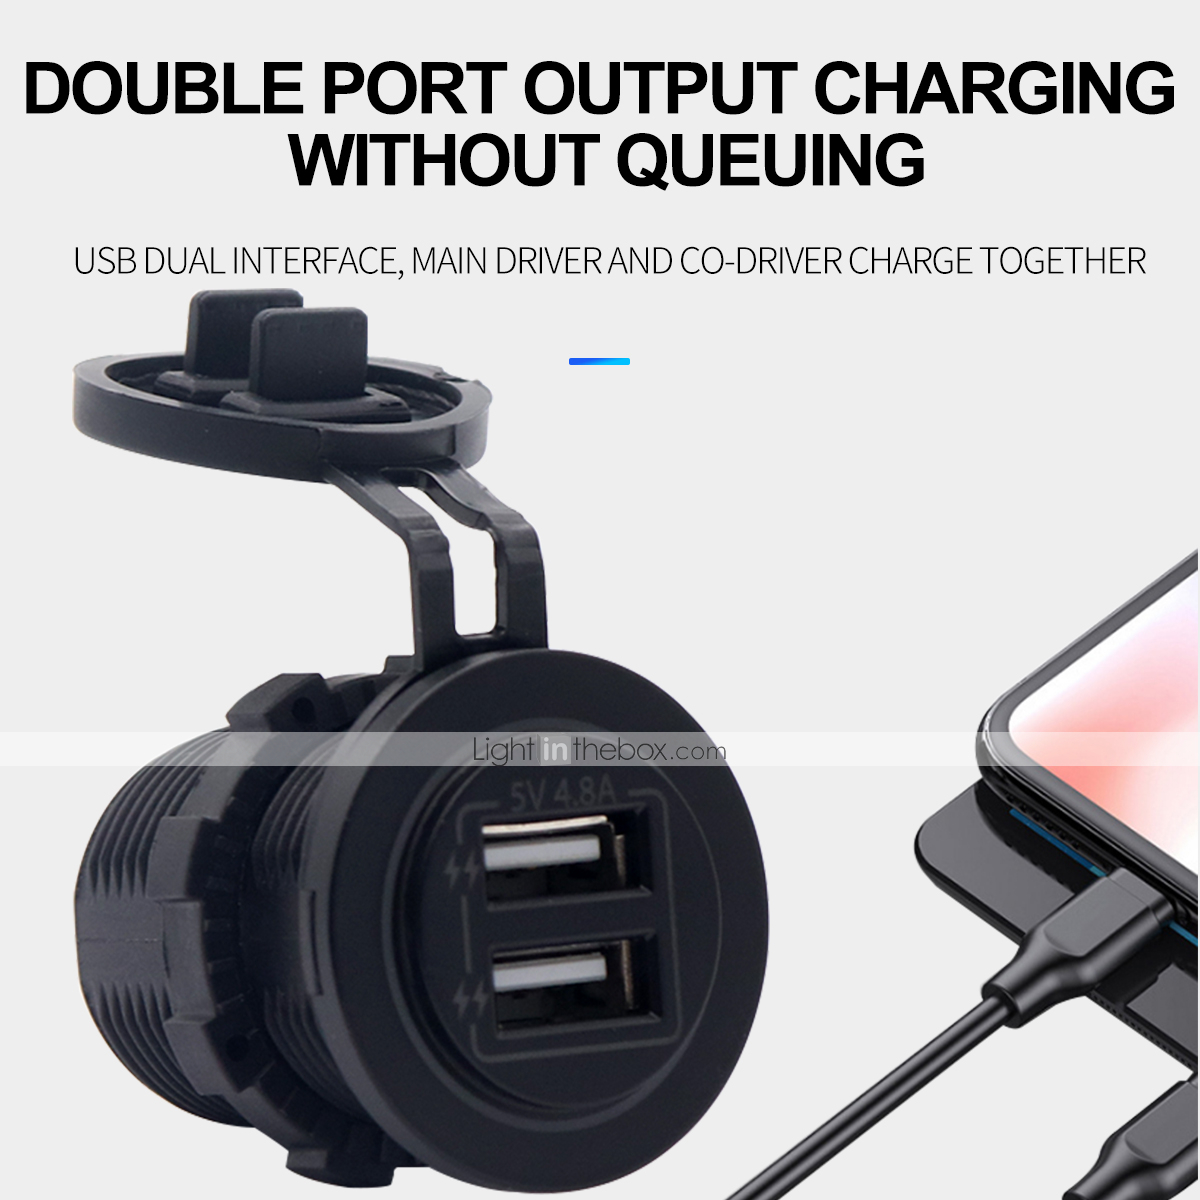 Queind Type-C to USB Port OTG Cable Converter Adapter for Samsung Cables